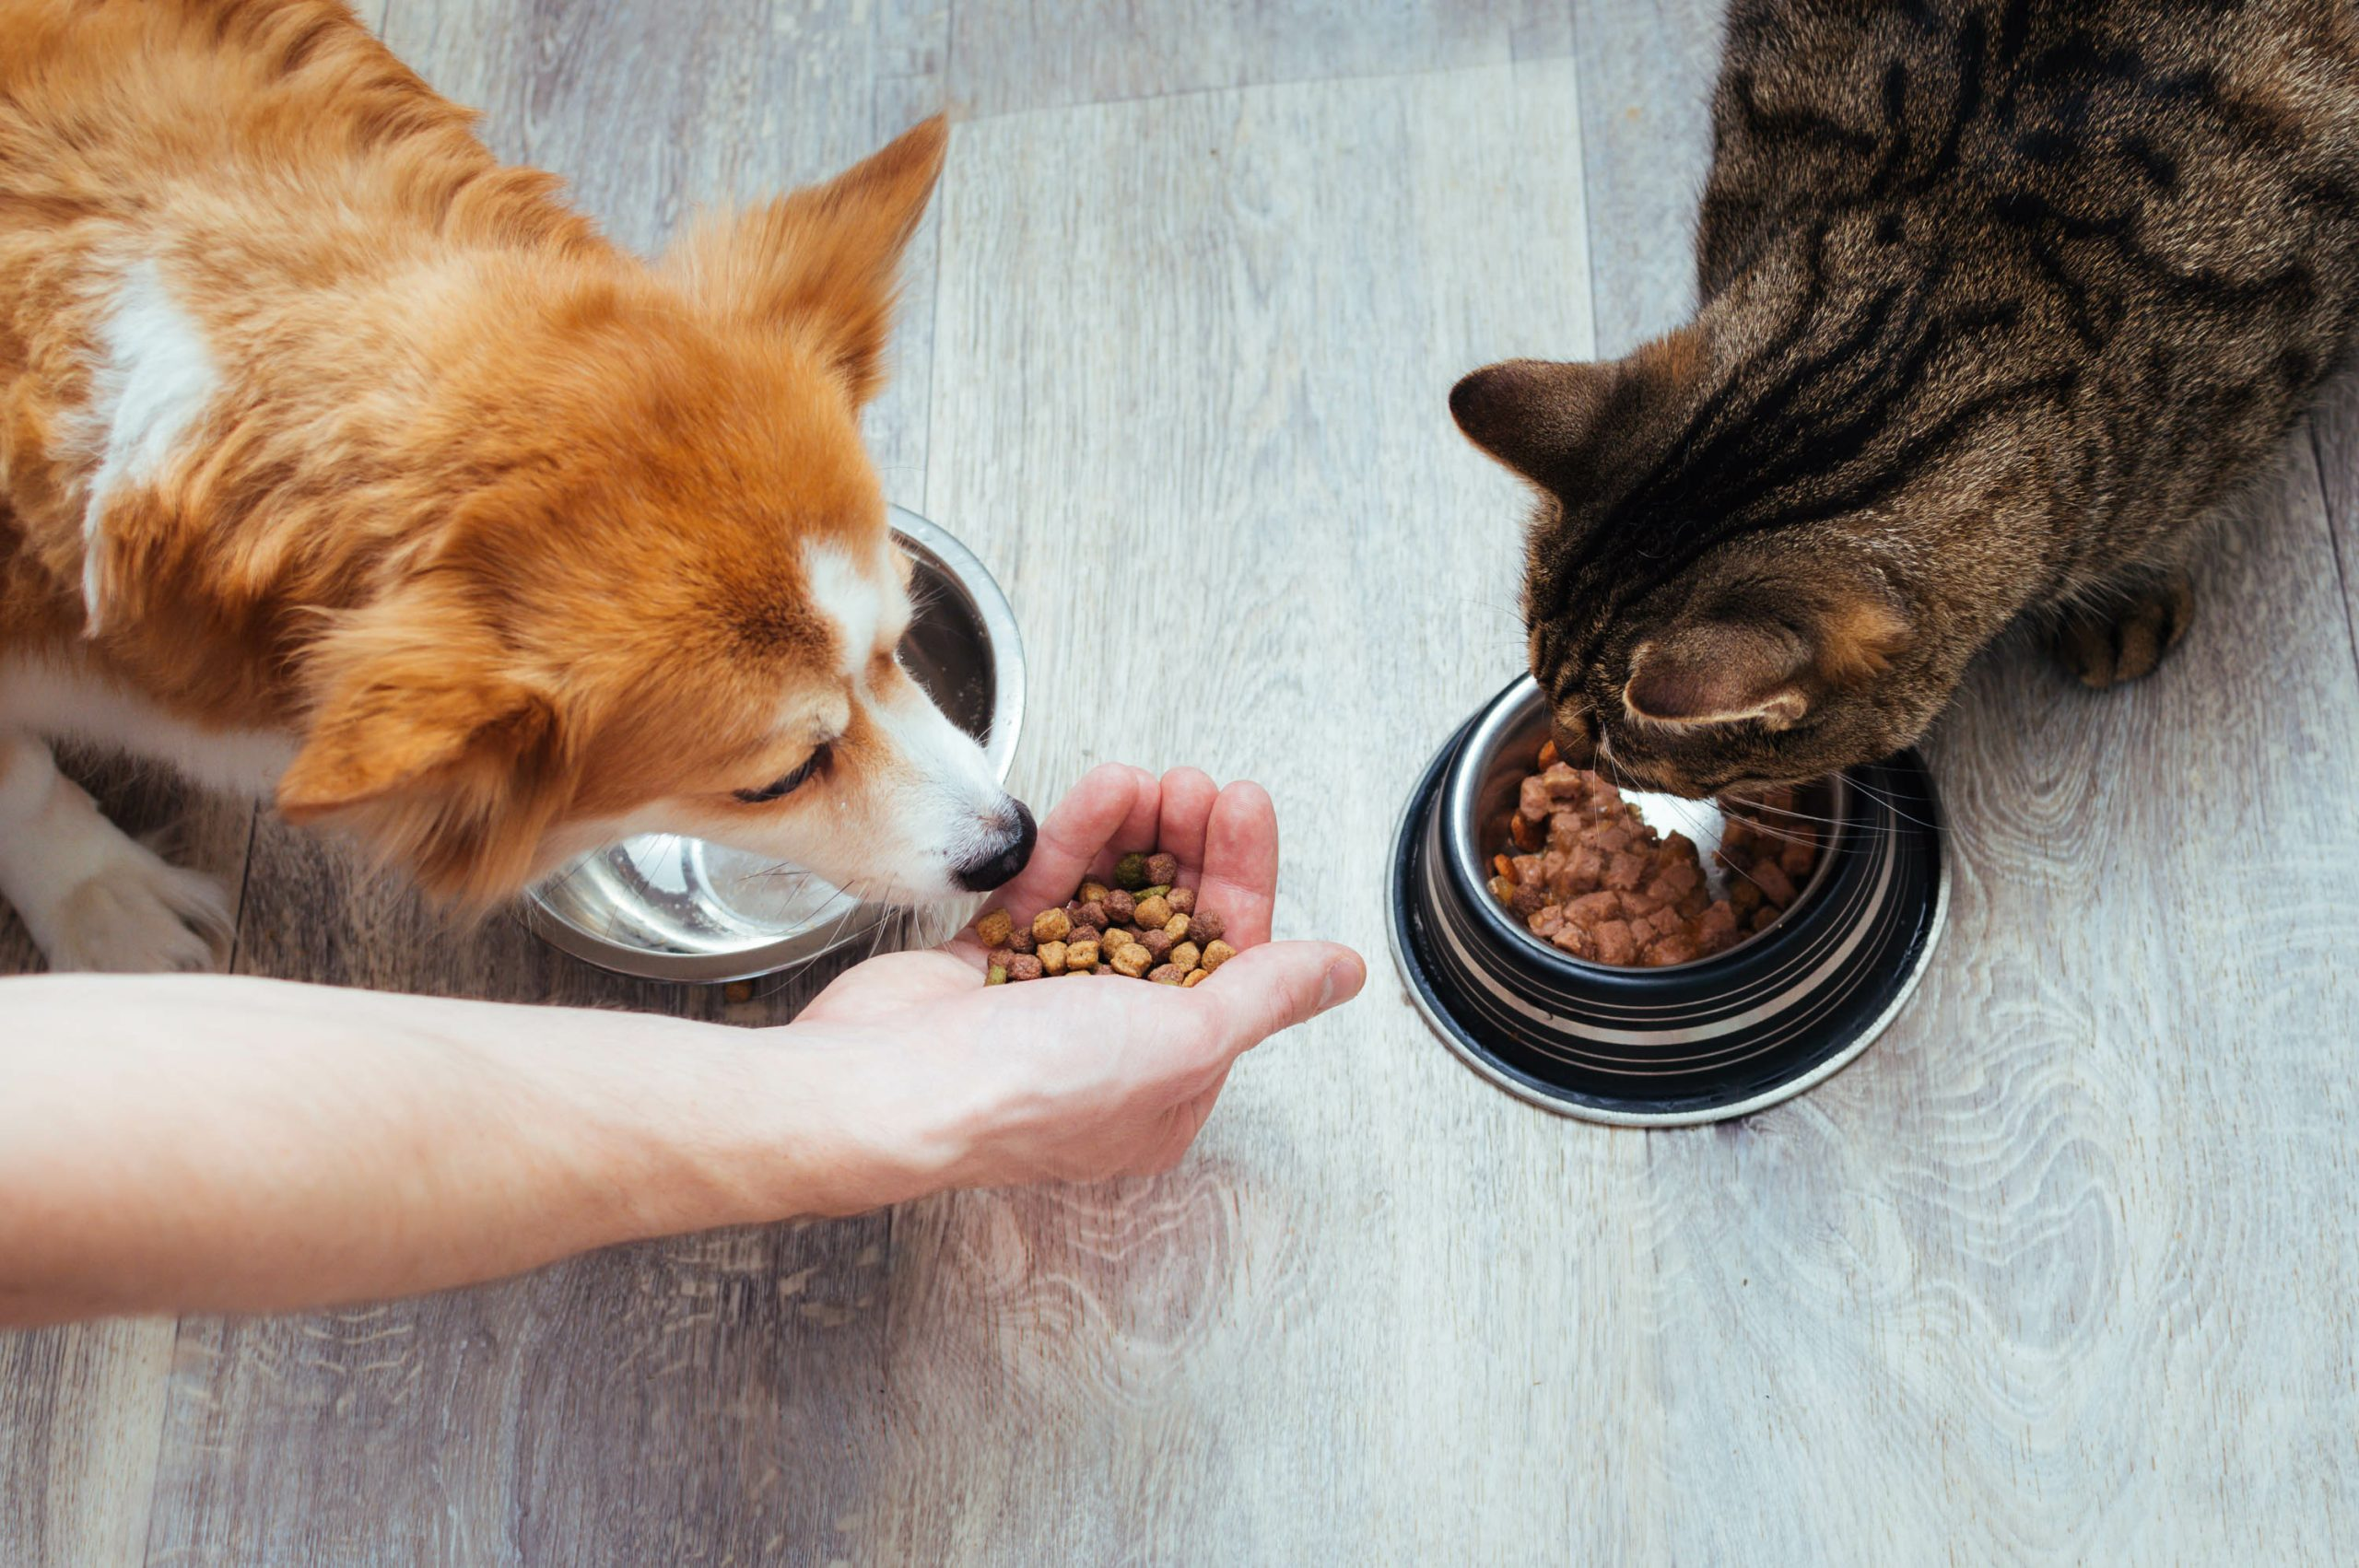 A dog and cat eating food from bowl, for healthy diet choices see a Kentwood Vet Clinic.